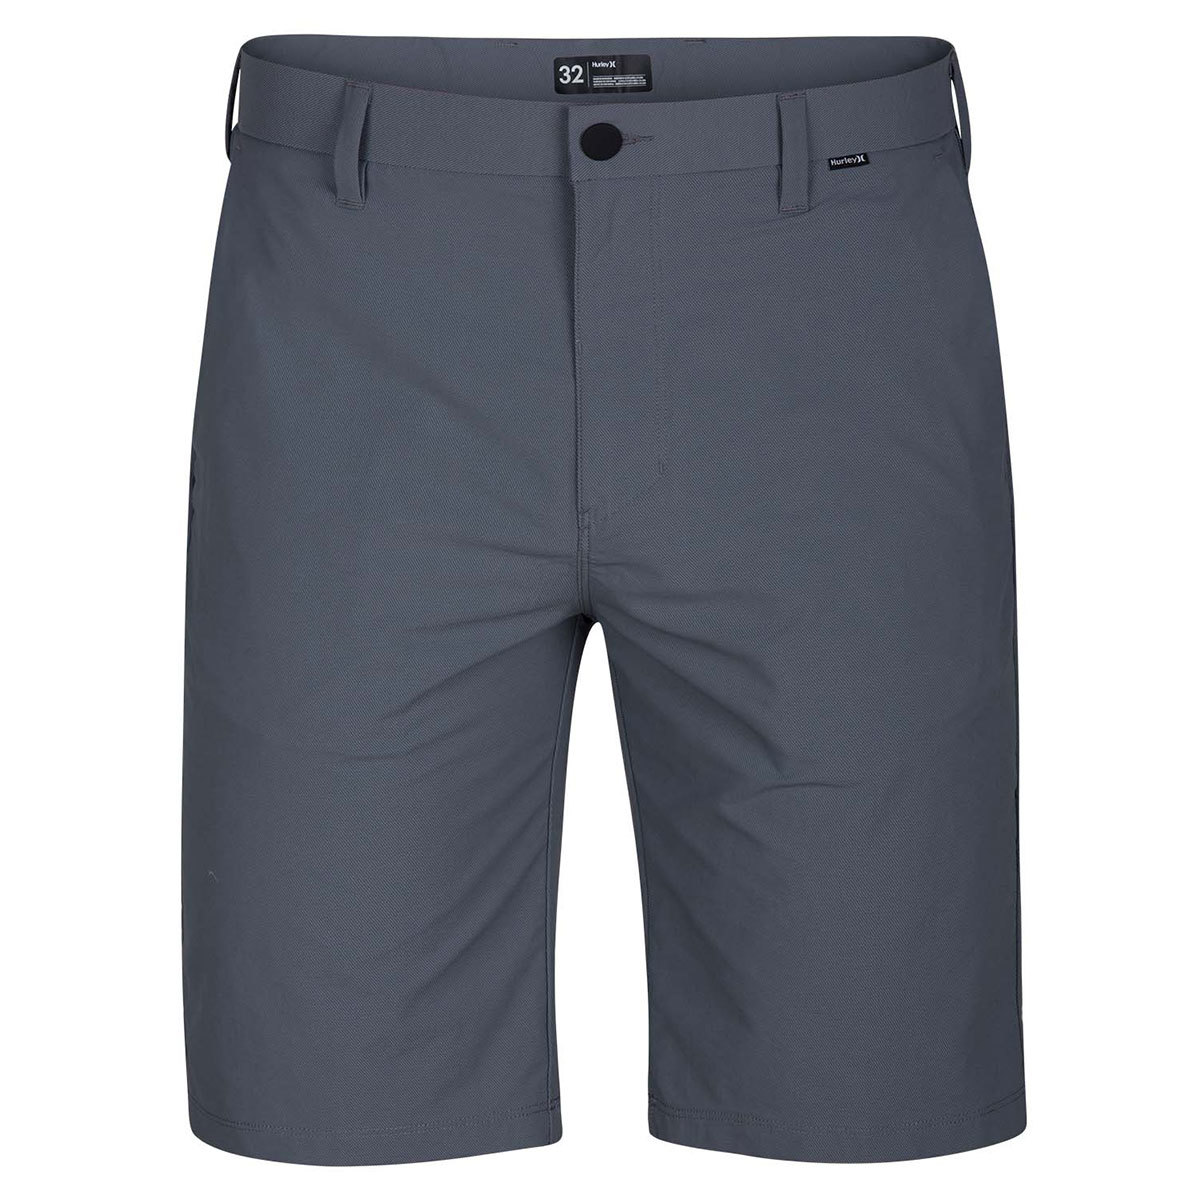 Hurley Guys' Dri-Fit Chino Shorts - Black, 36